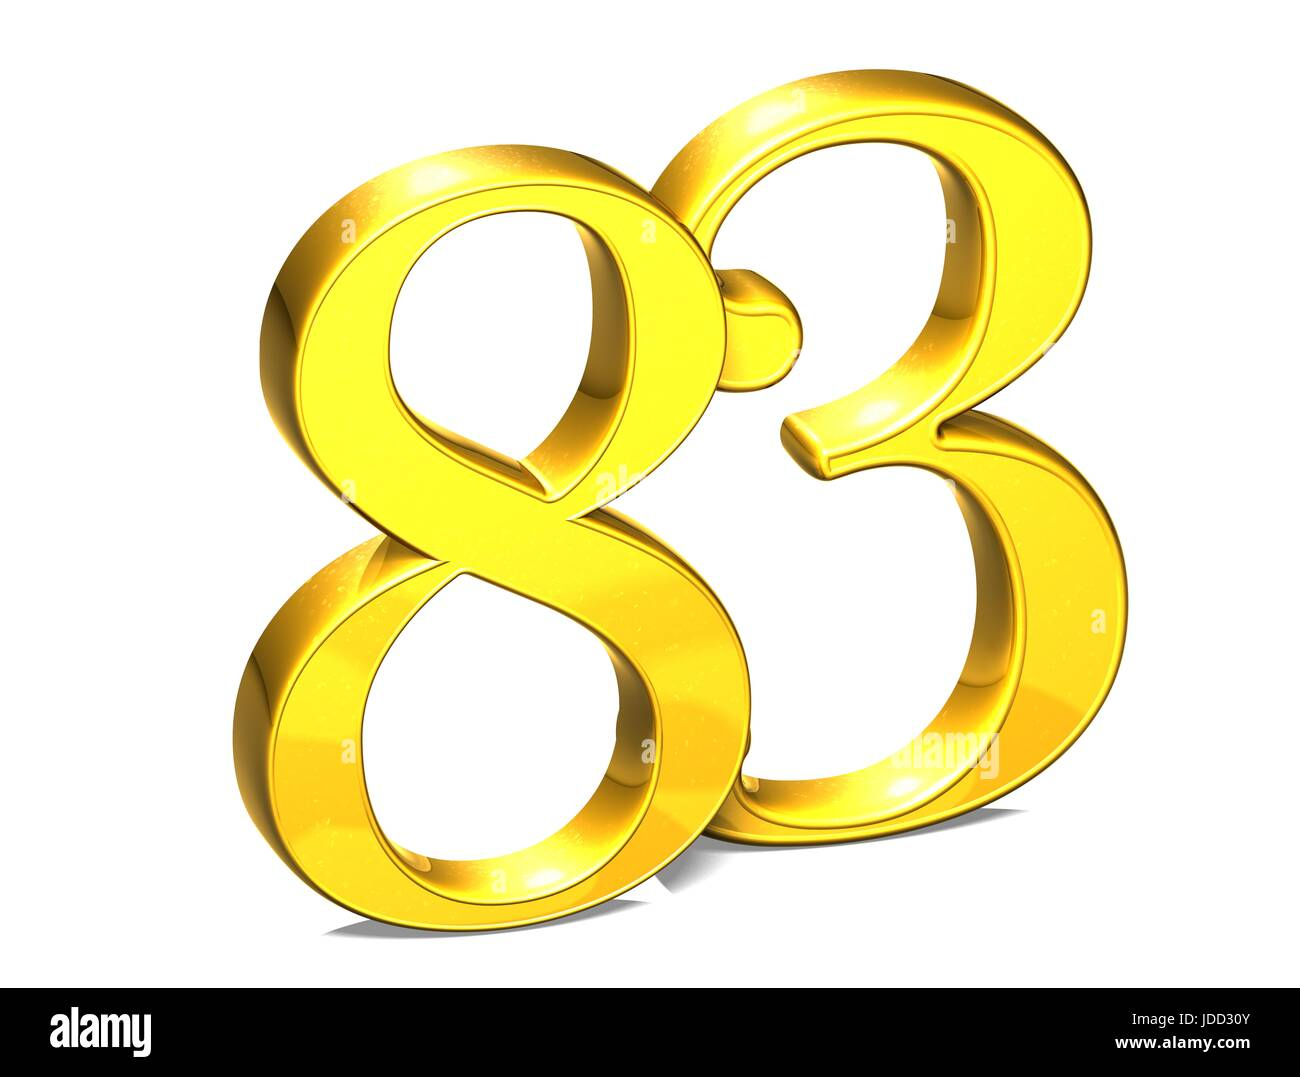 3D Gold Number eighty-three on white background